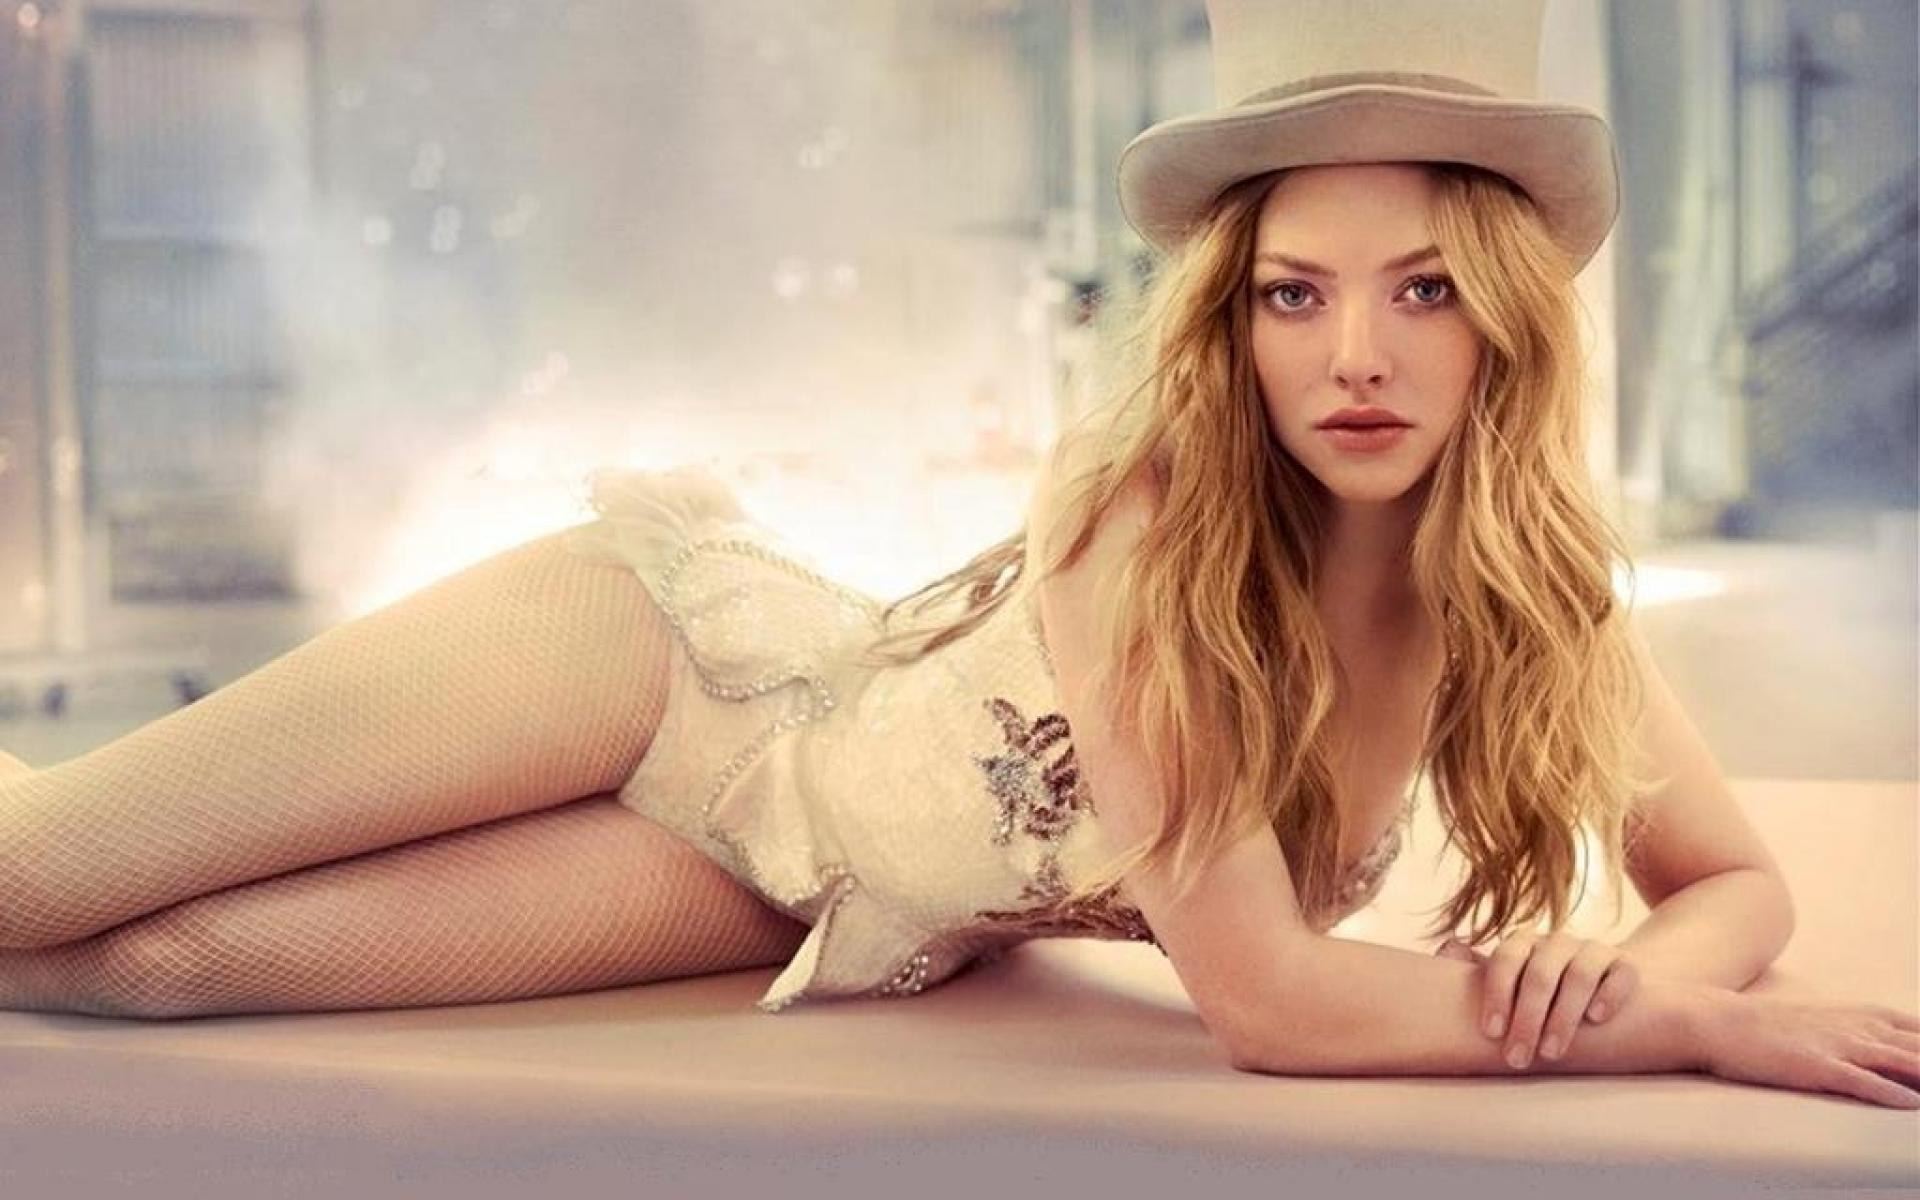 Amanda Seyfried Hot Video 61 hottest amanda seyfried pictures will make you melt like